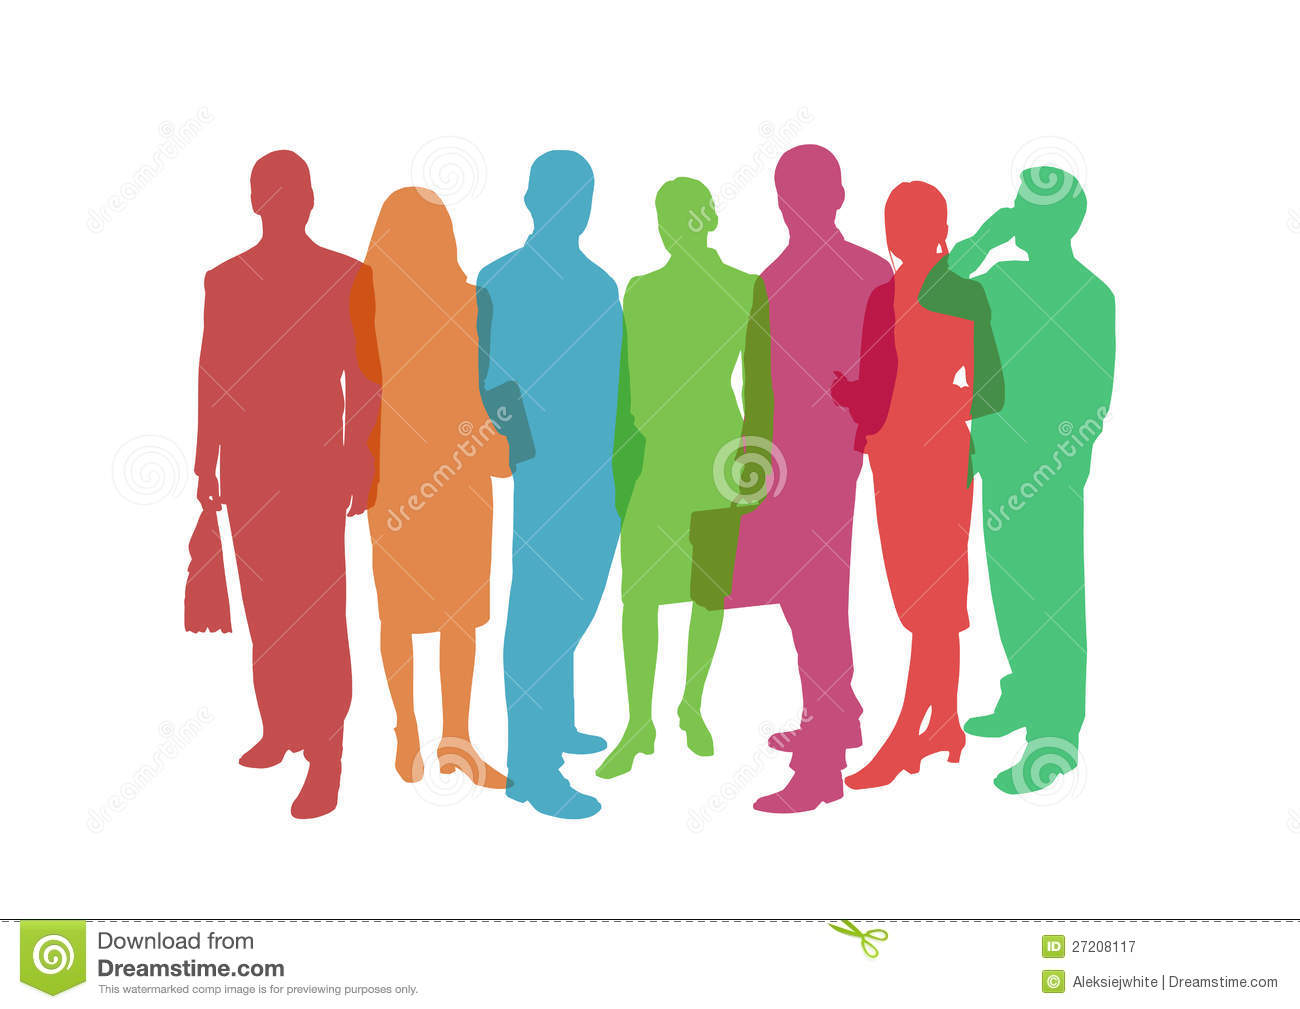 Business People Colorful Illustration Royalty Free Stock ... Colorful People